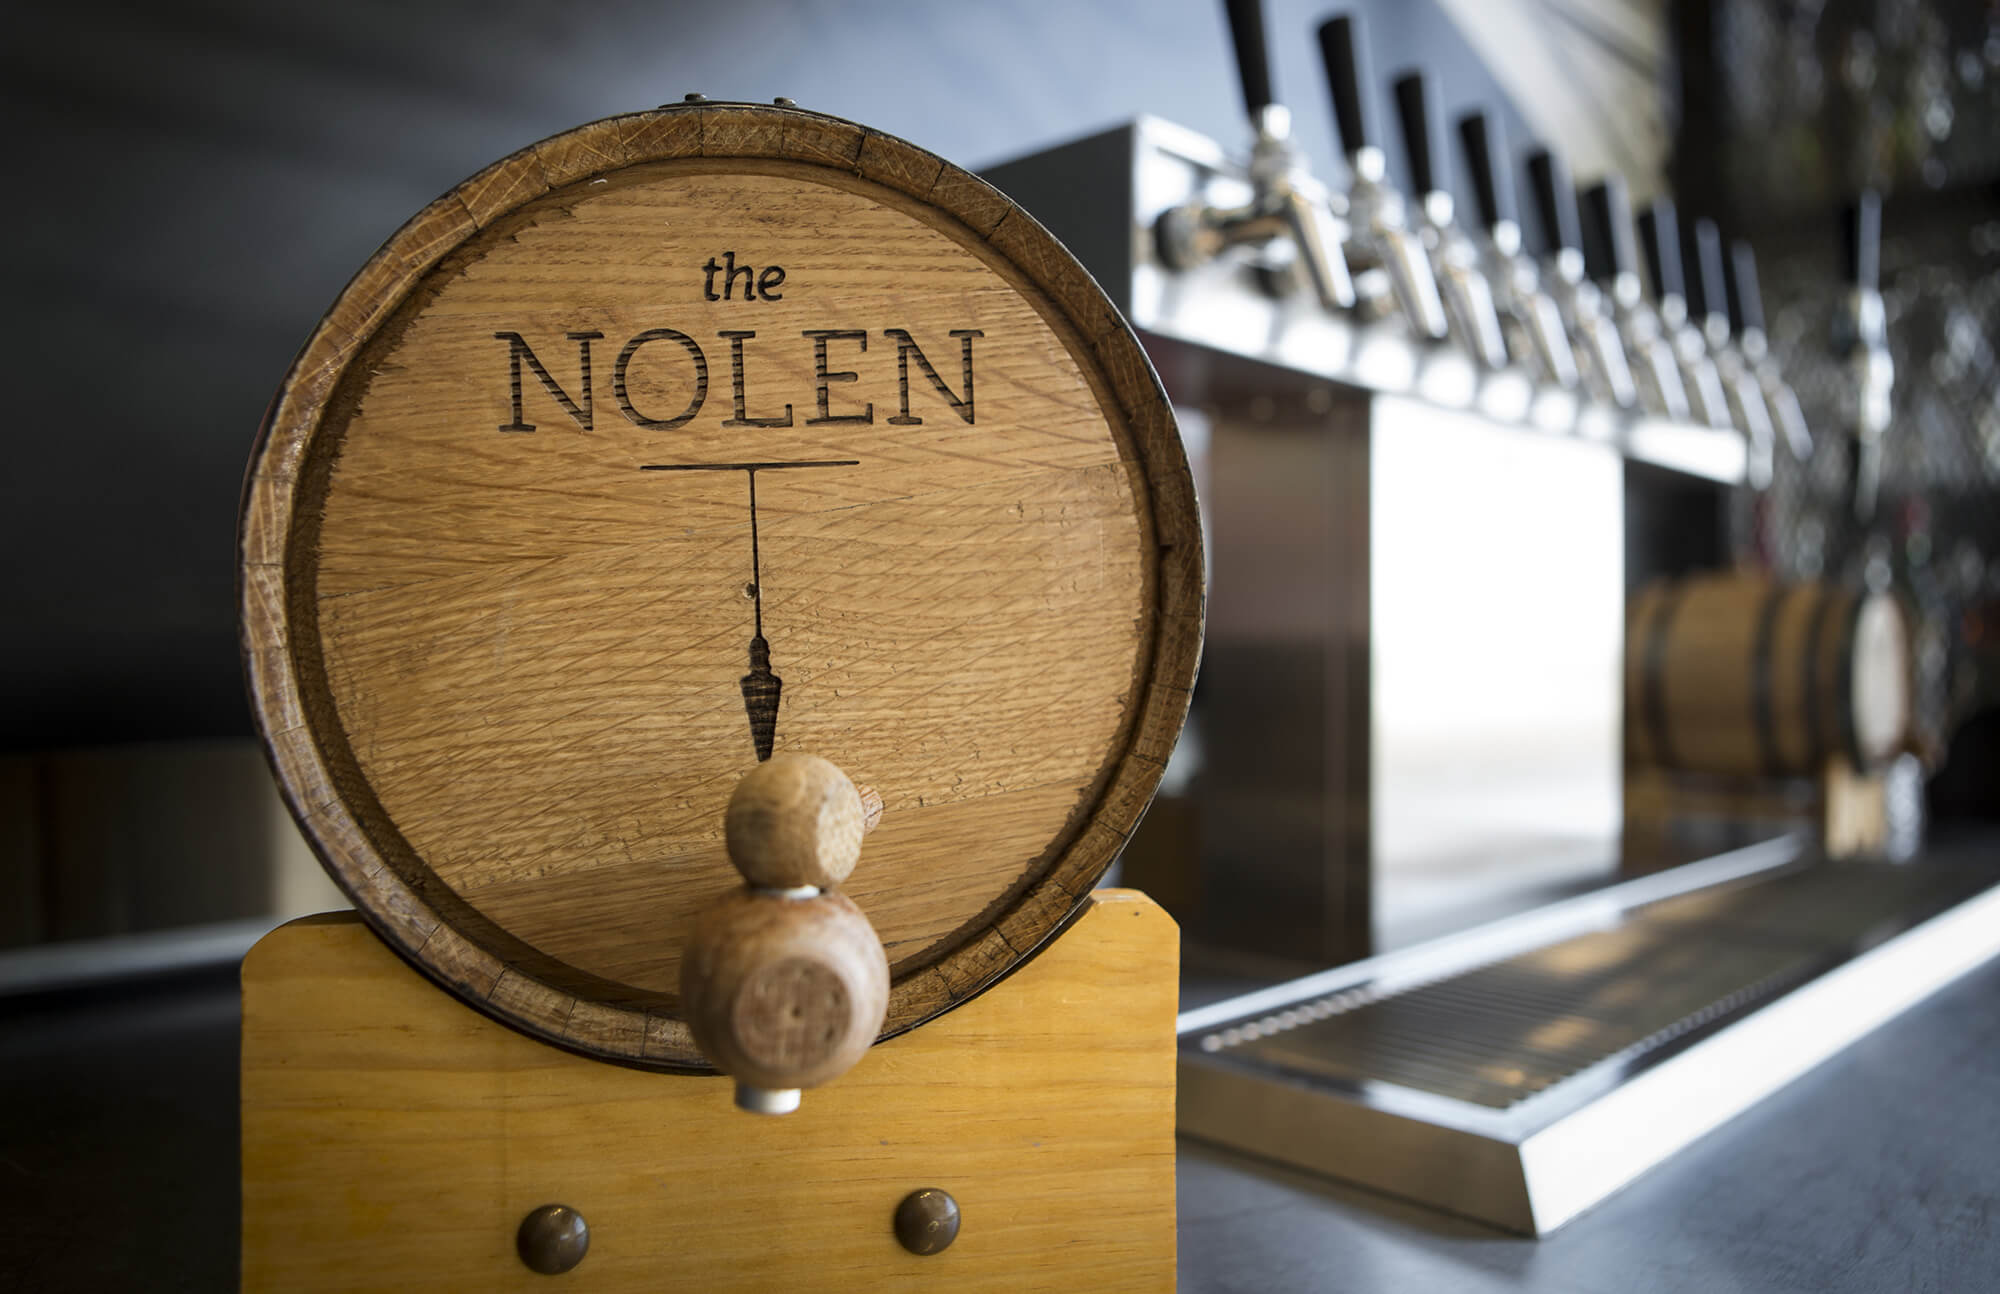 the-nolen-barrel